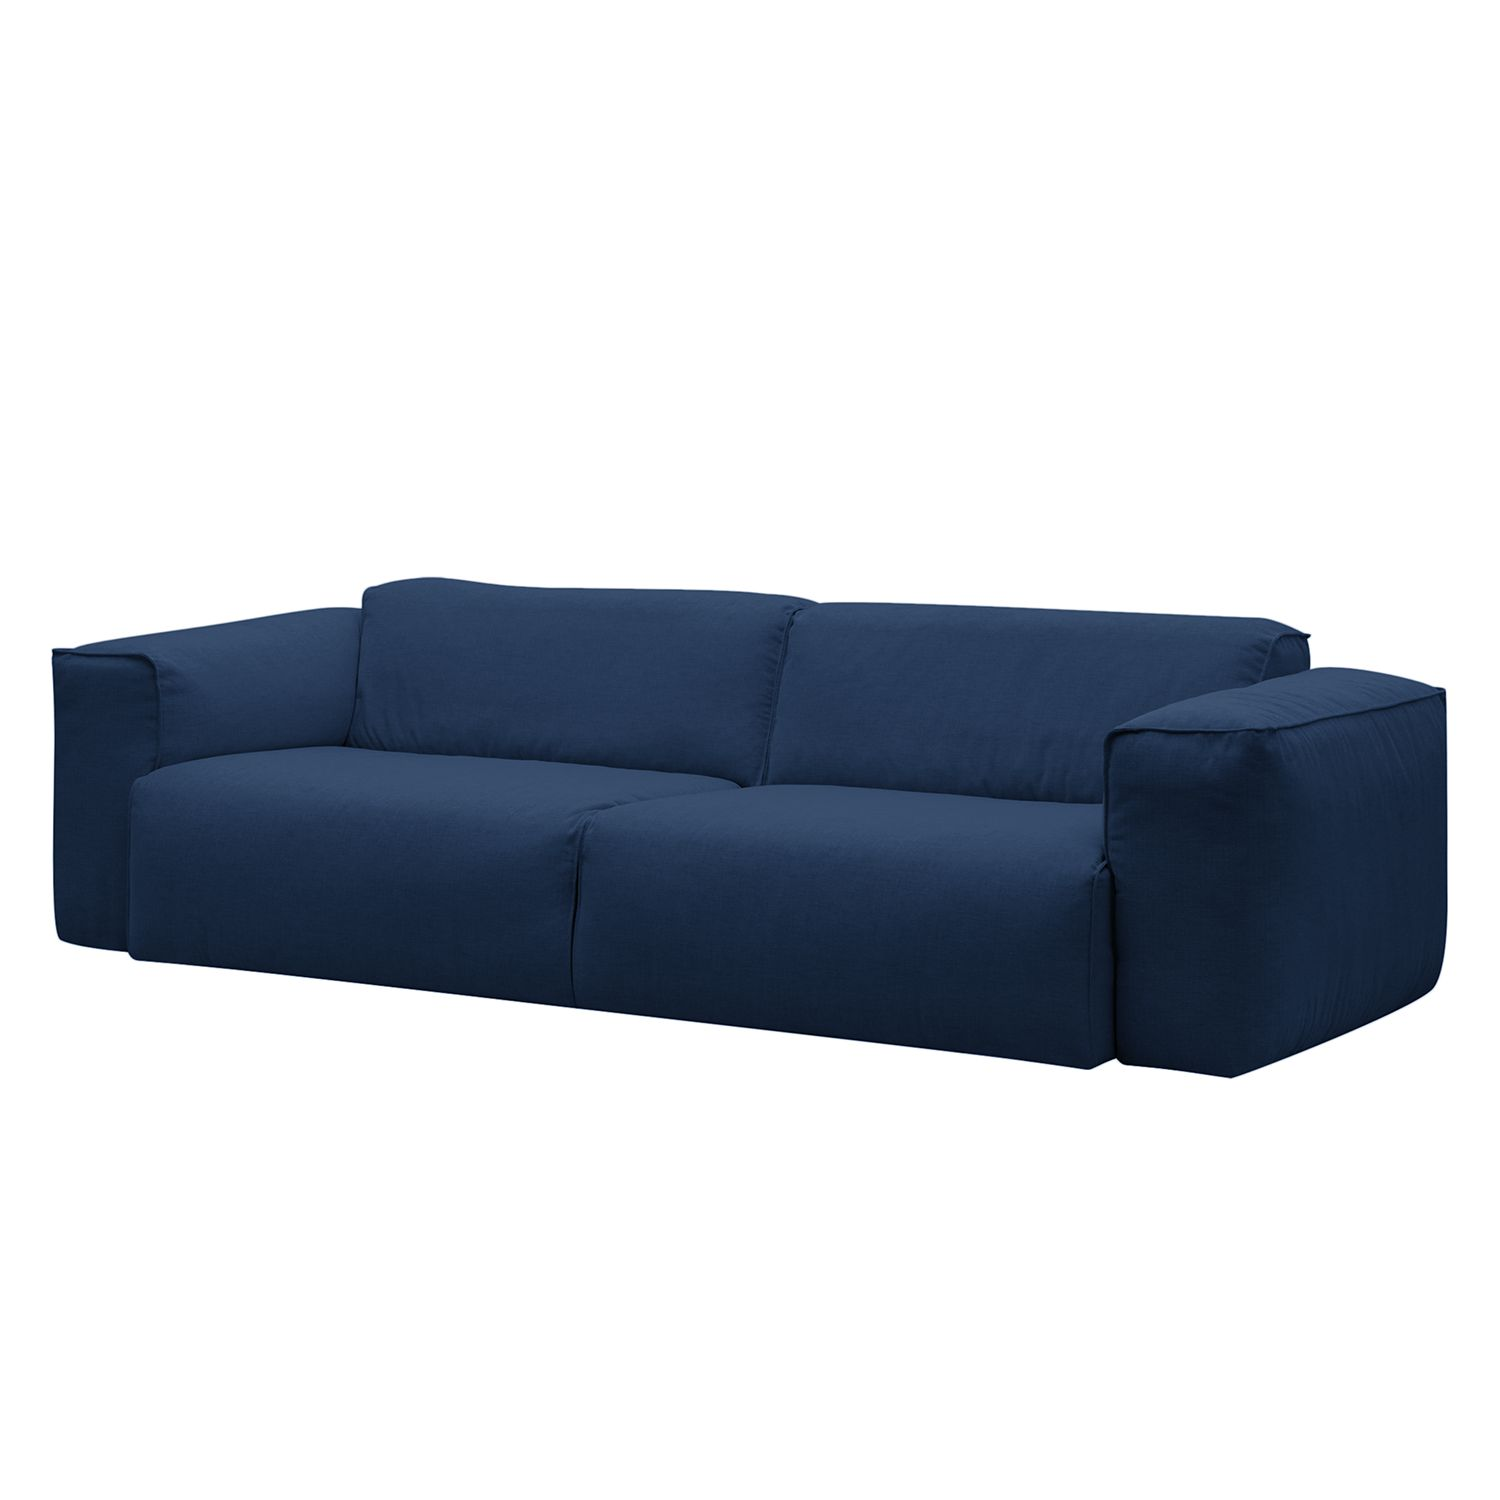 sofa hudson ii 3 sitzer webstoff stoff anda ii blau studio copenhagen online kaufen bei woonio. Black Bedroom Furniture Sets. Home Design Ideas